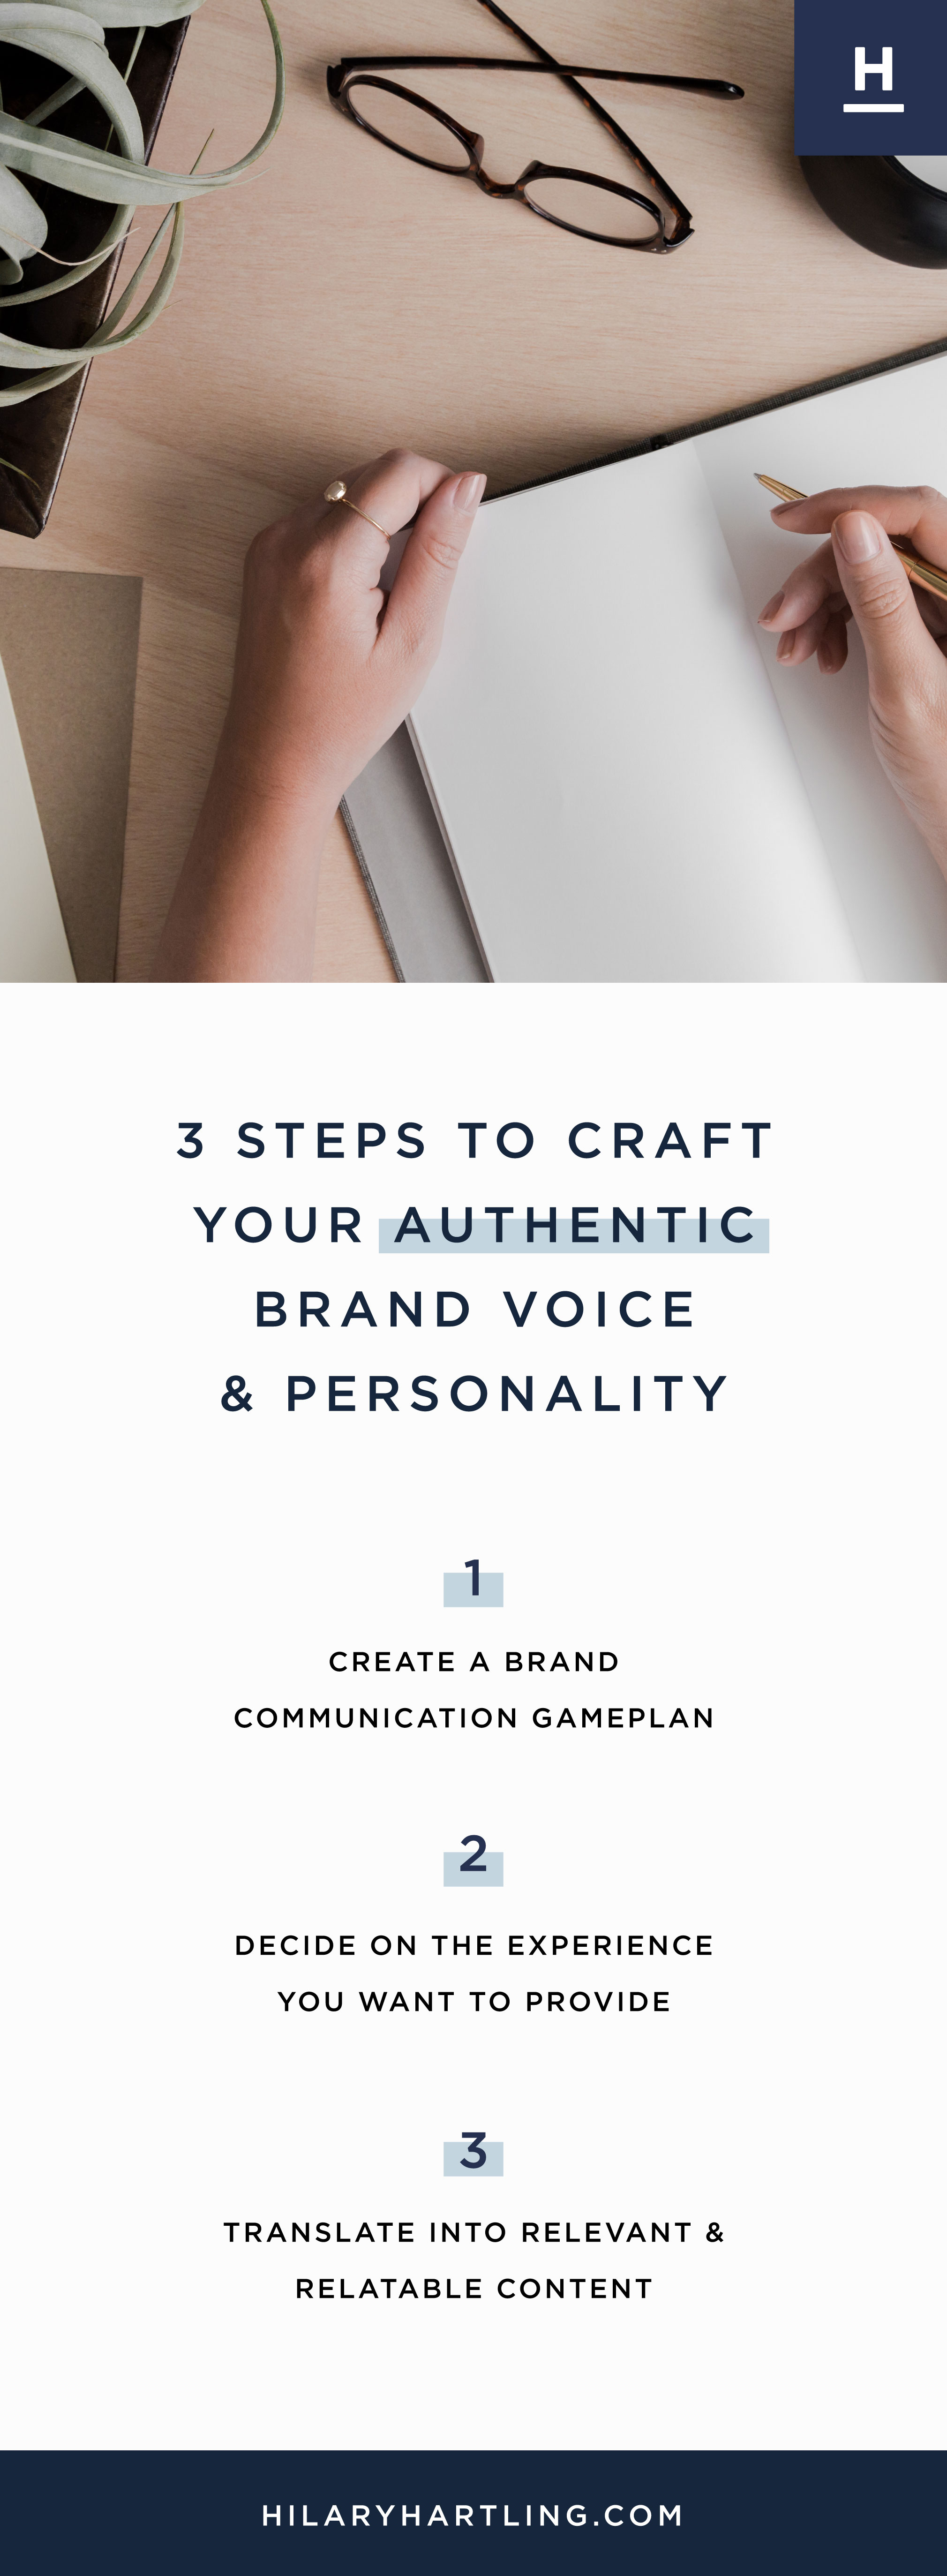 3-STEPS-TO-CRAFT--YOUR-AUTHENTIC-BRAND-VOICE--&-PERSONALITY.jpg